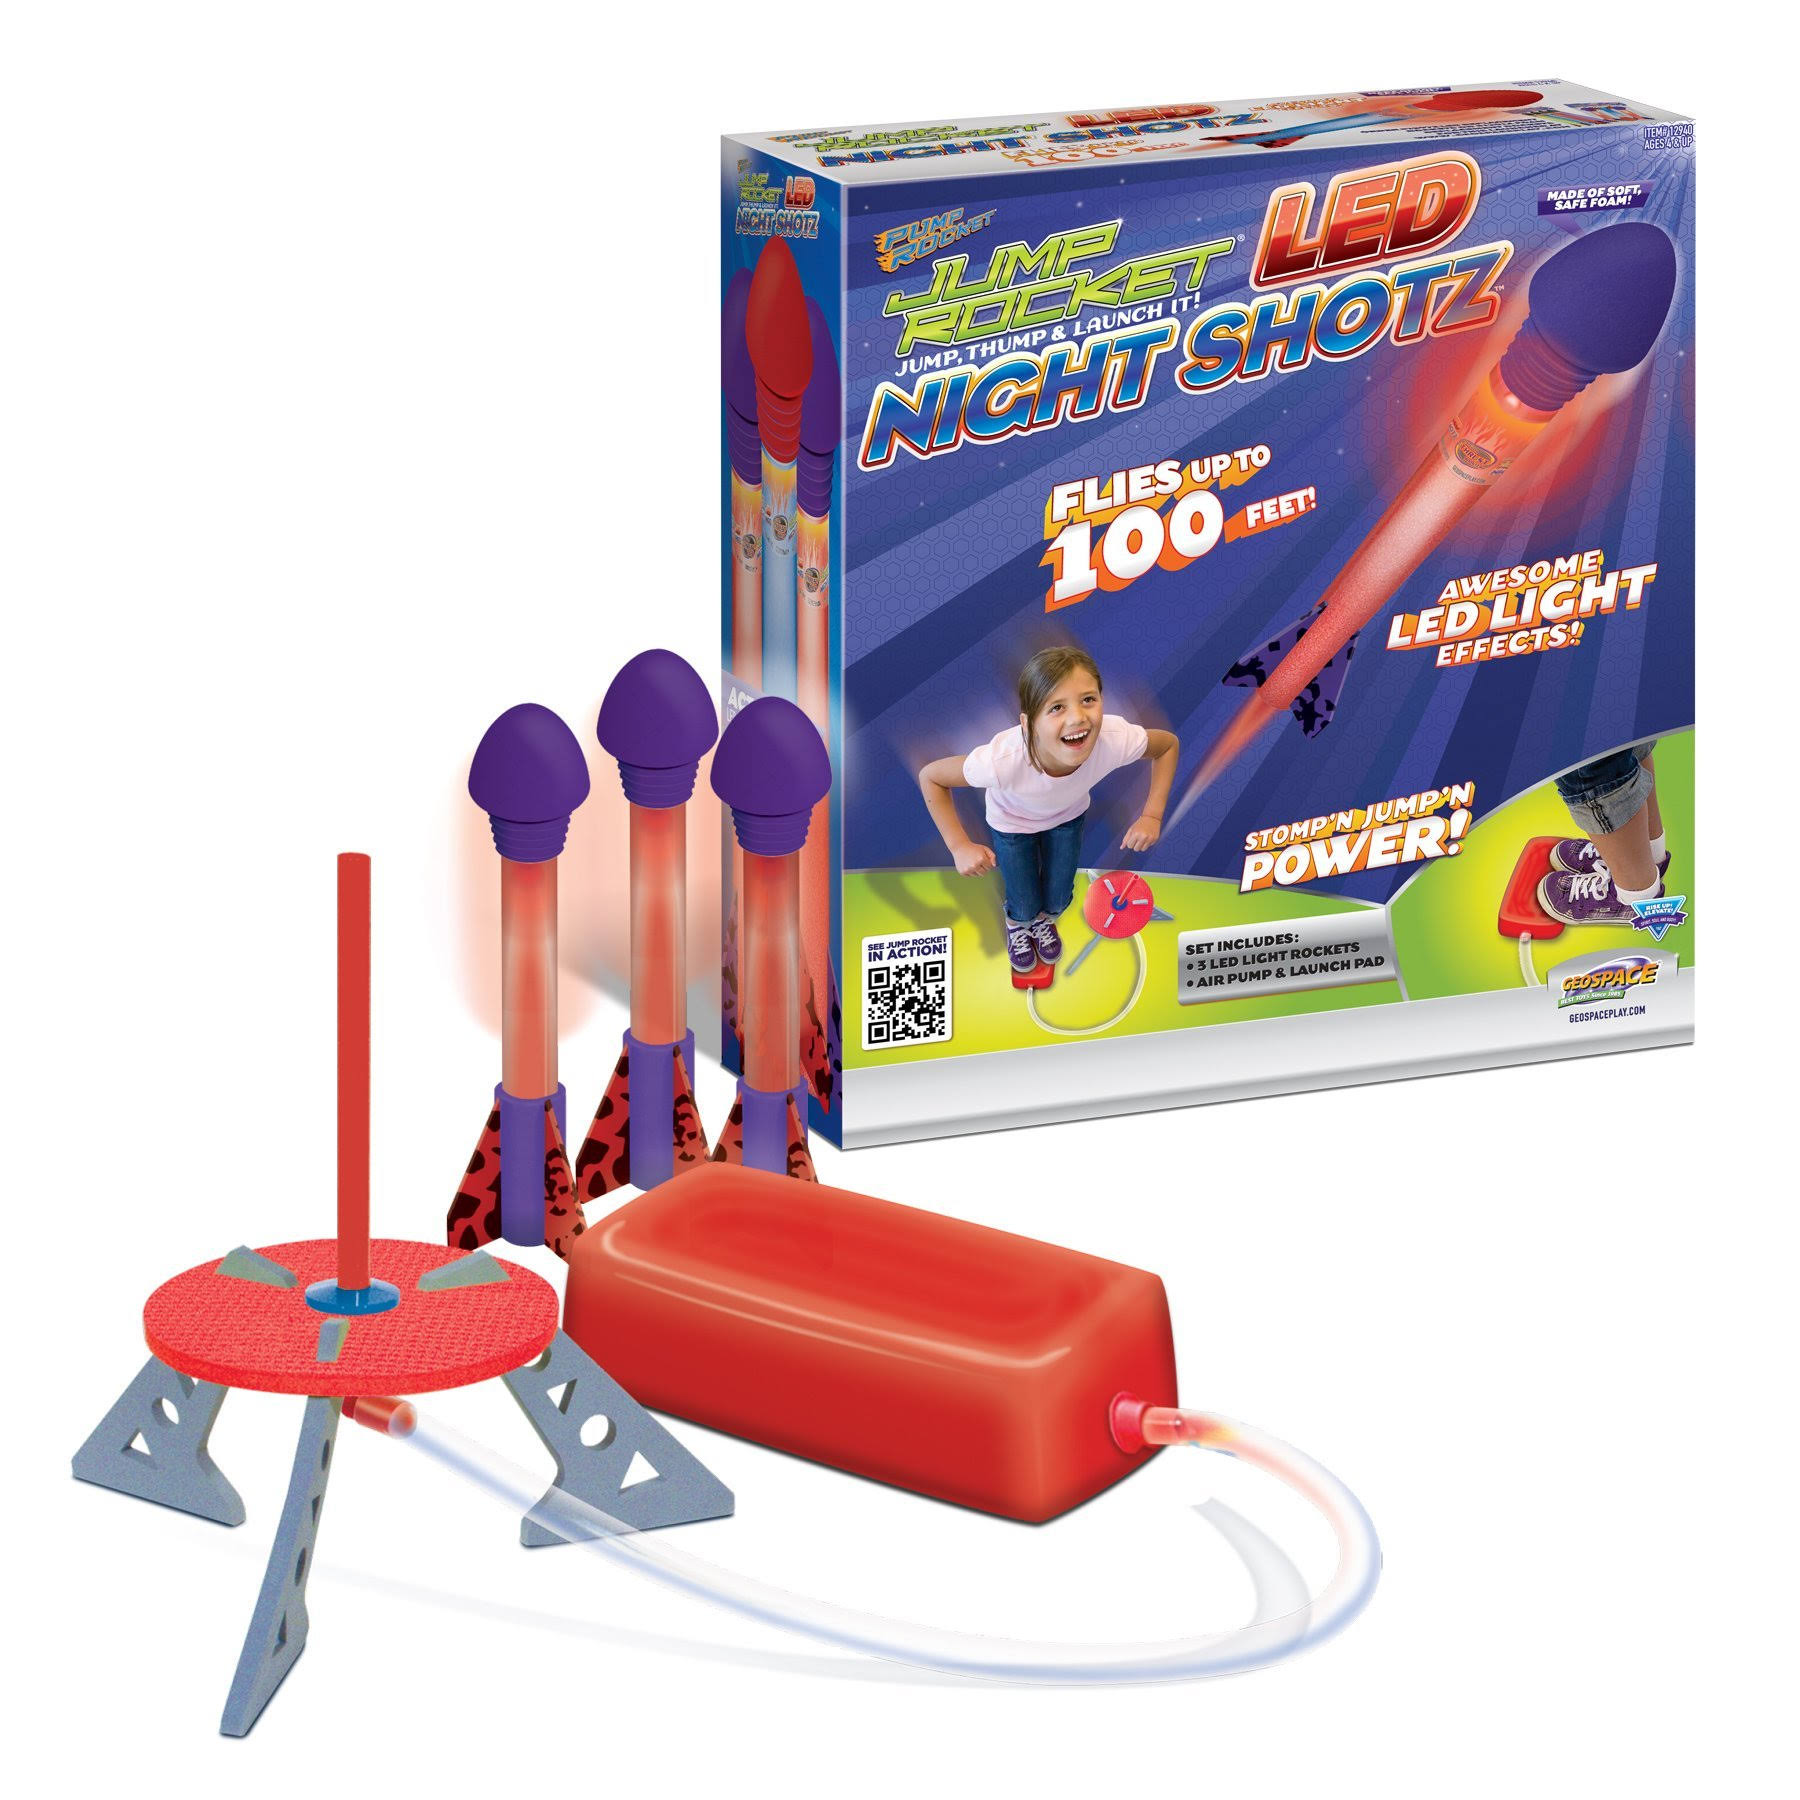 Geospace Jump Rocket LED Night Shotz - Jump Pump, Launcher & Light-Up Flying Foam Rockets